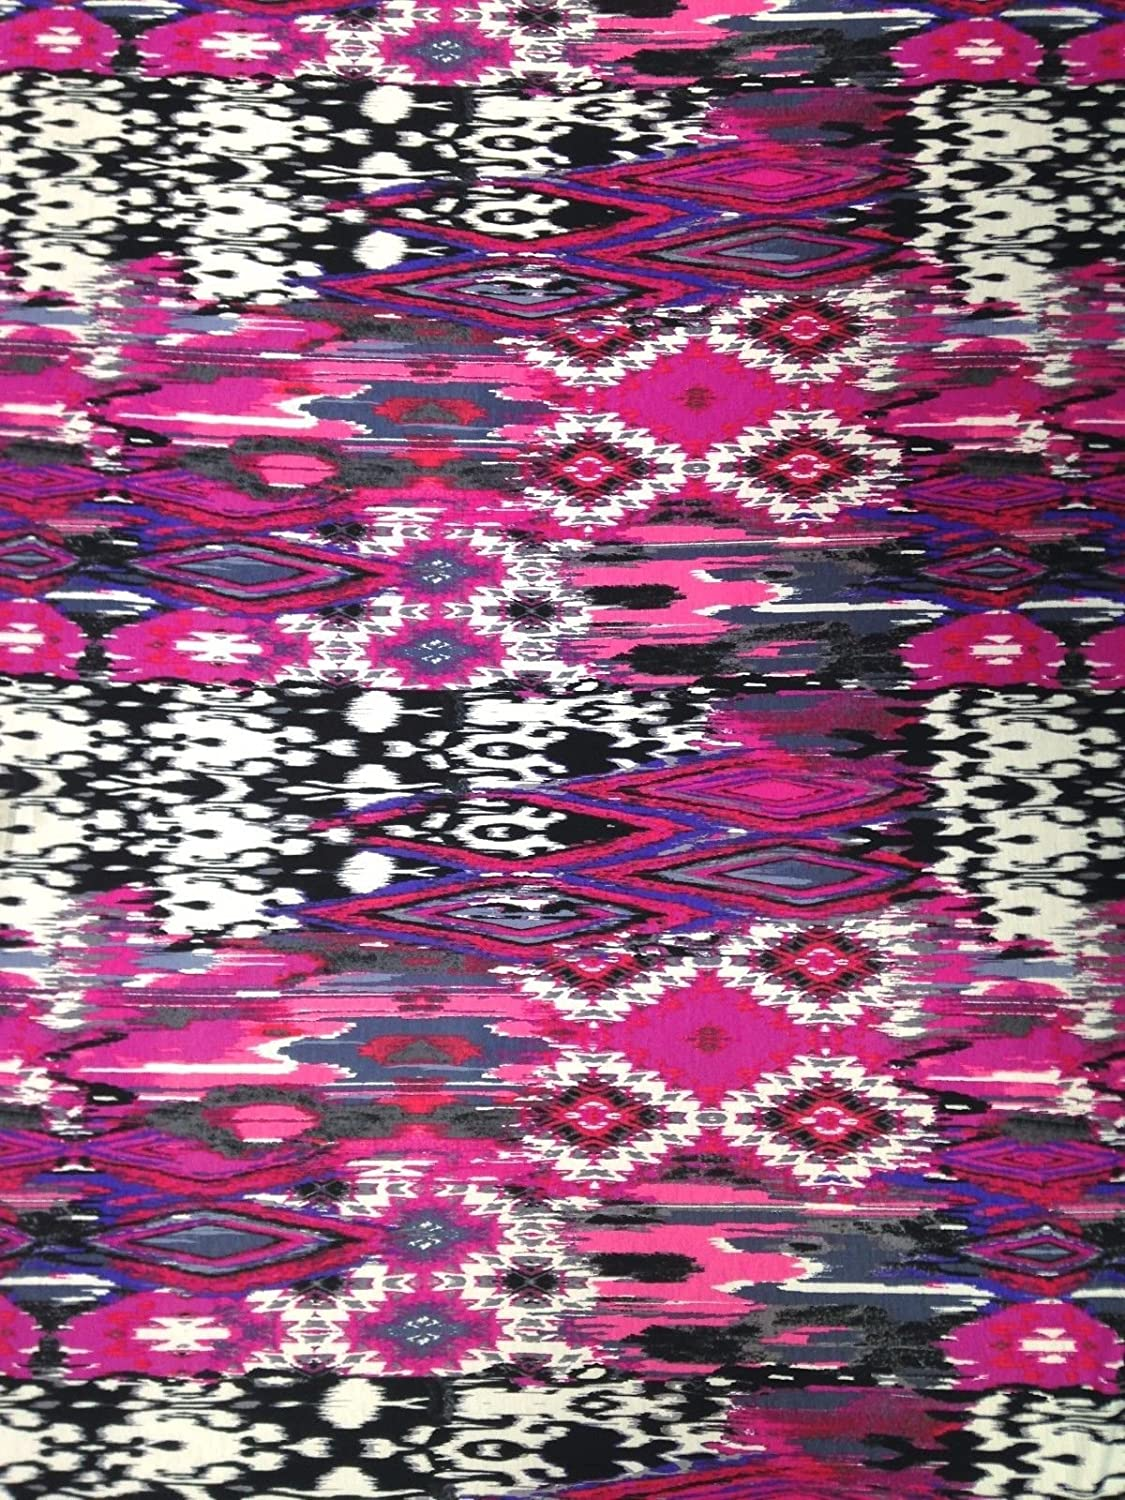 Tribal Abstract Pattern on Stretch Polyester Spandex Fabric